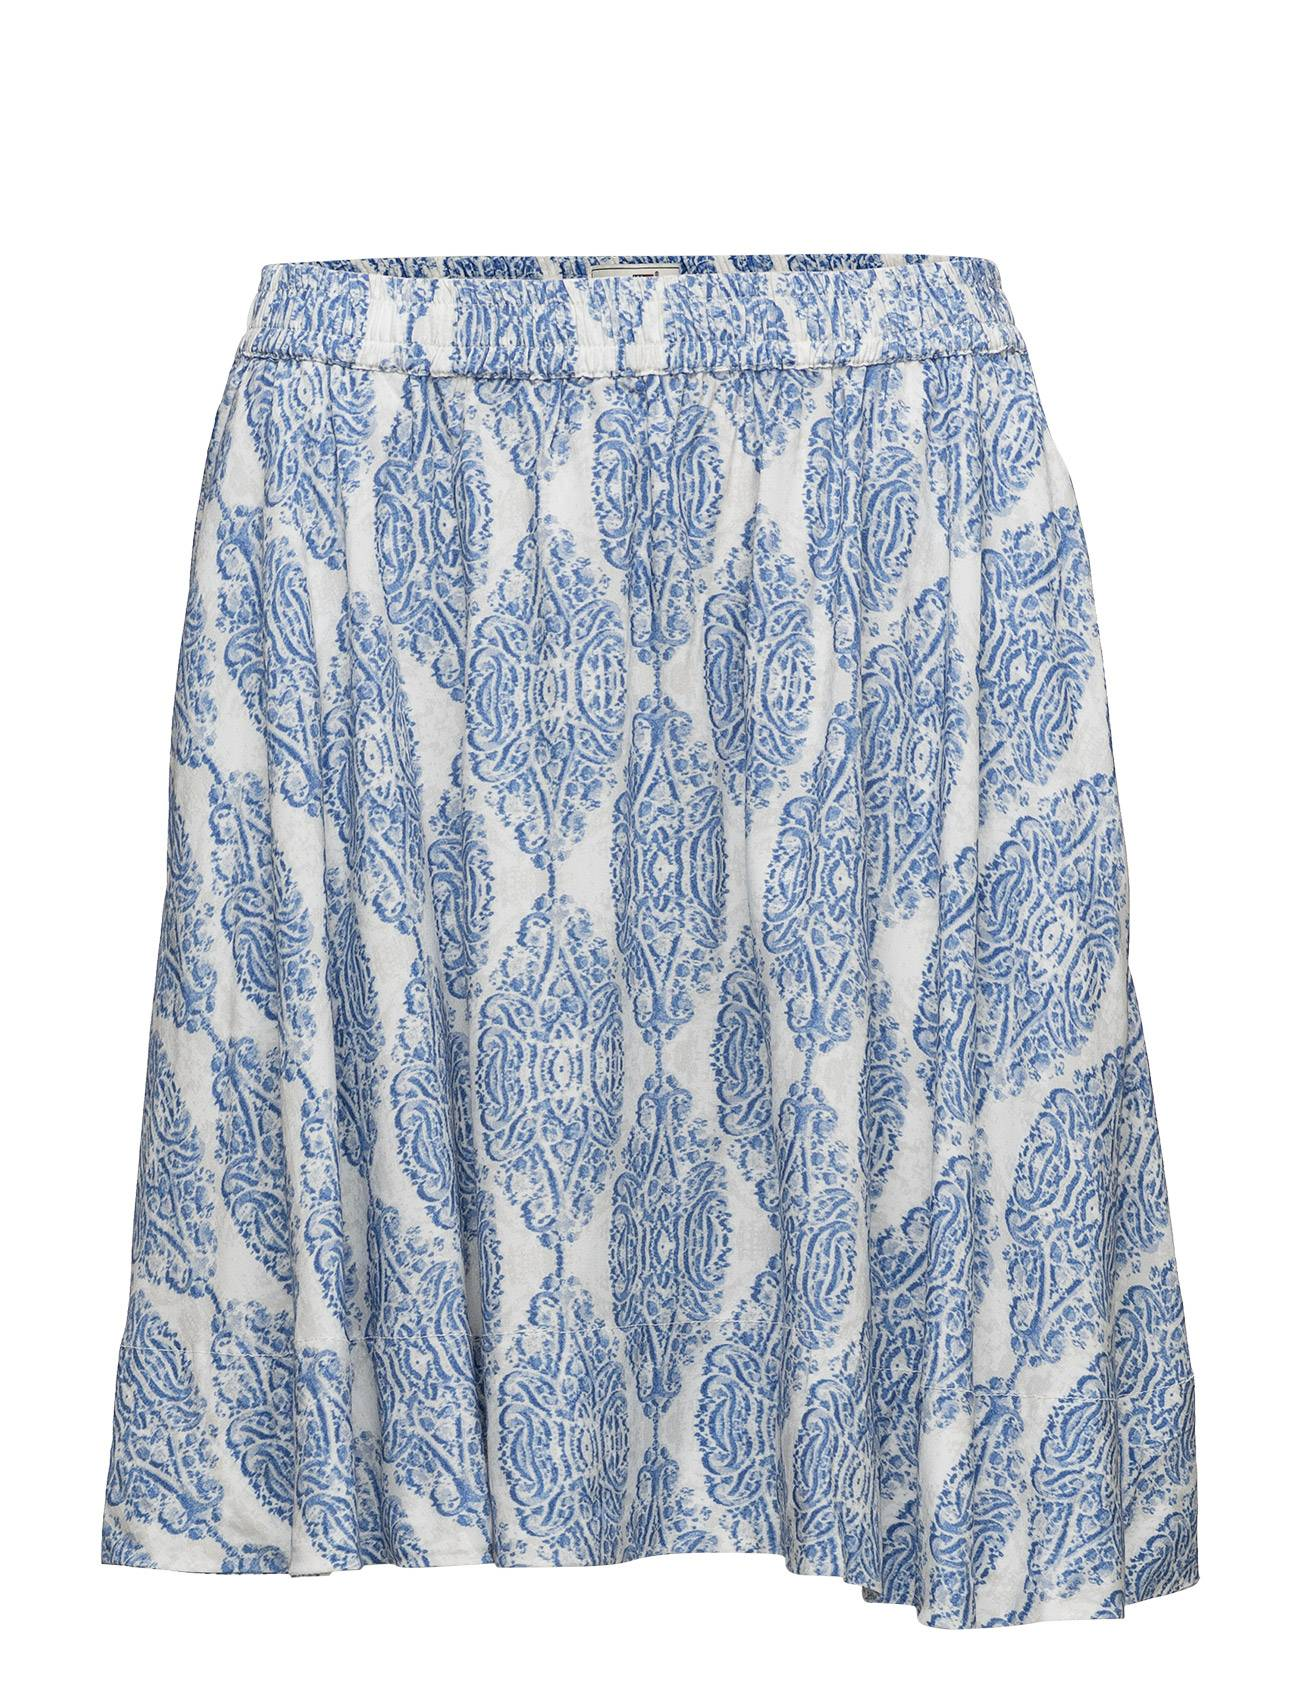 Lexington Company Rikki Paisley Skirt